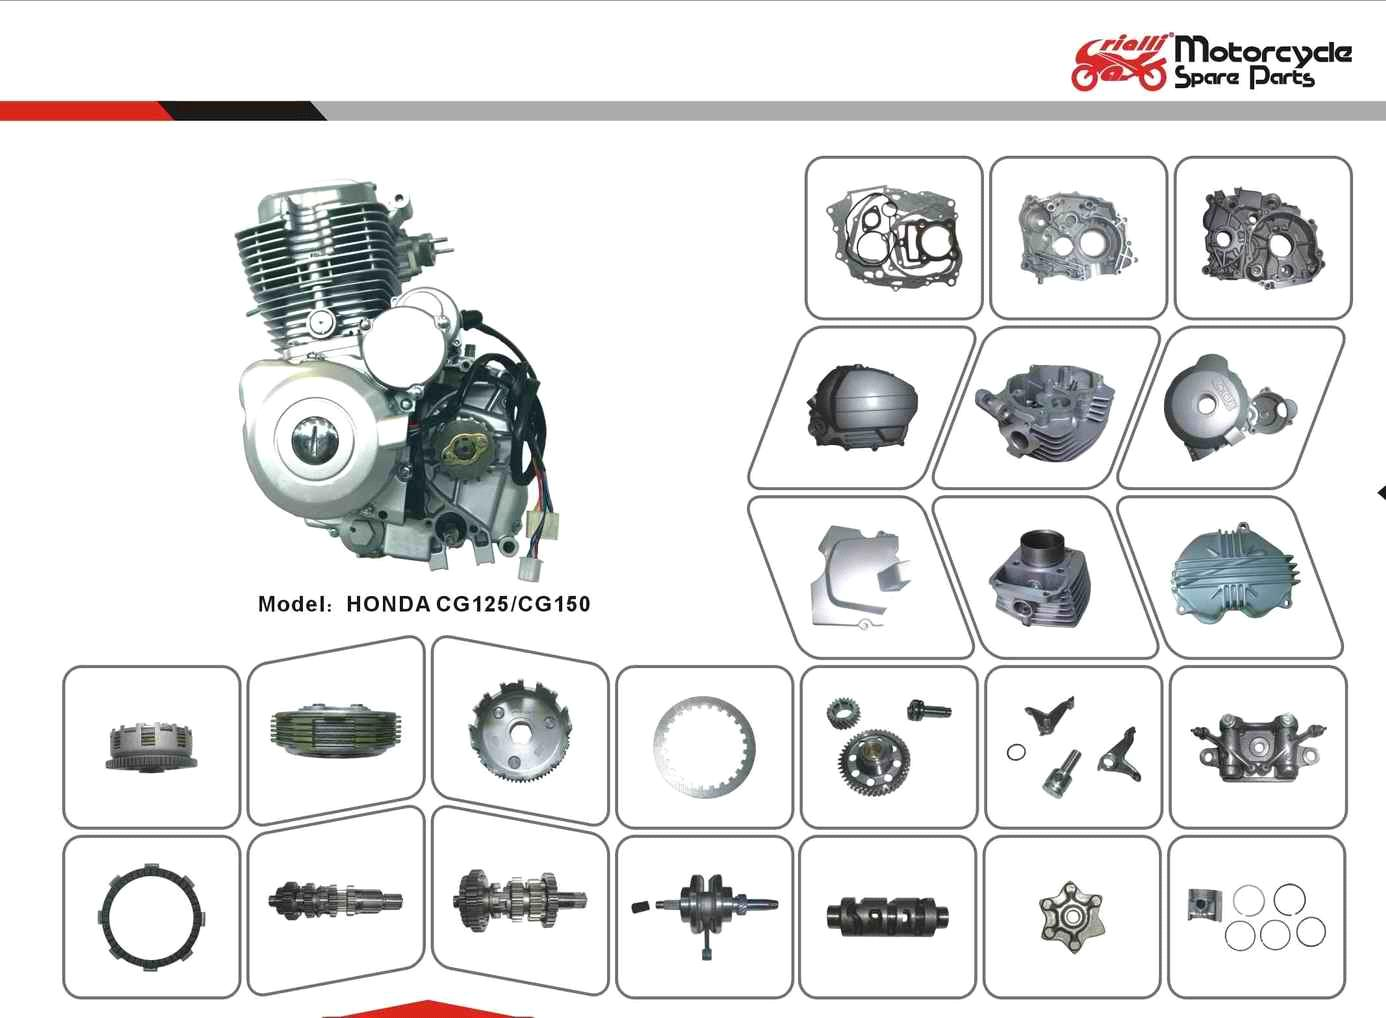 150cc Engine Diagram Wiring Will Be A Thing Tank Atv Honda Motorcycle Spare Parts Catalog Motorview Co Pulsar